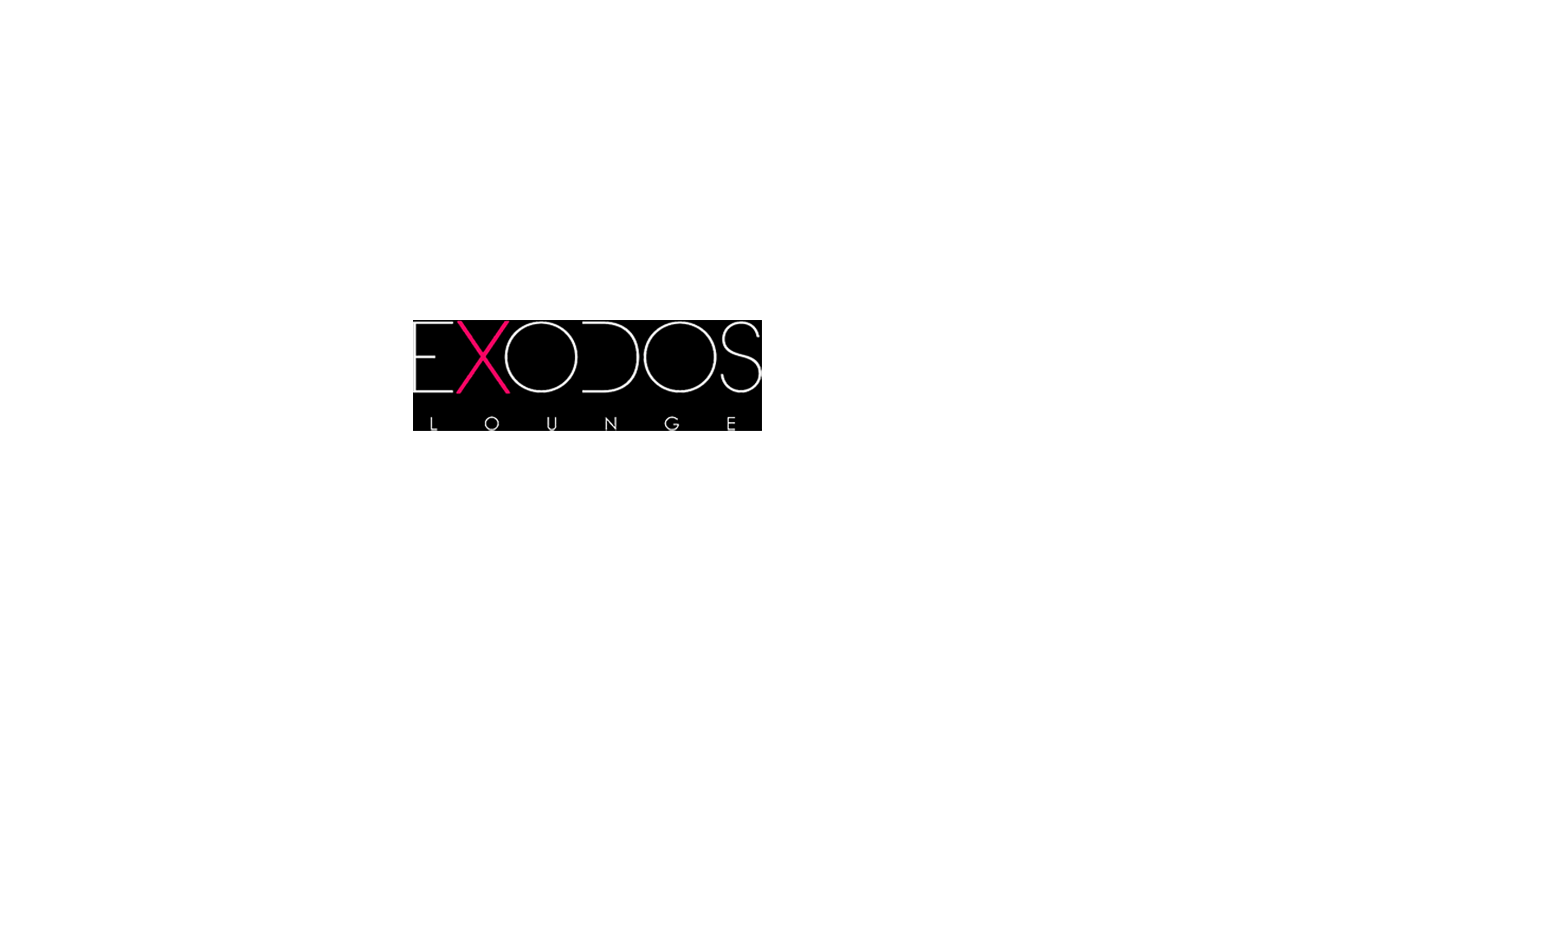 PageLines-exodos-wifi png - Cronus Communications